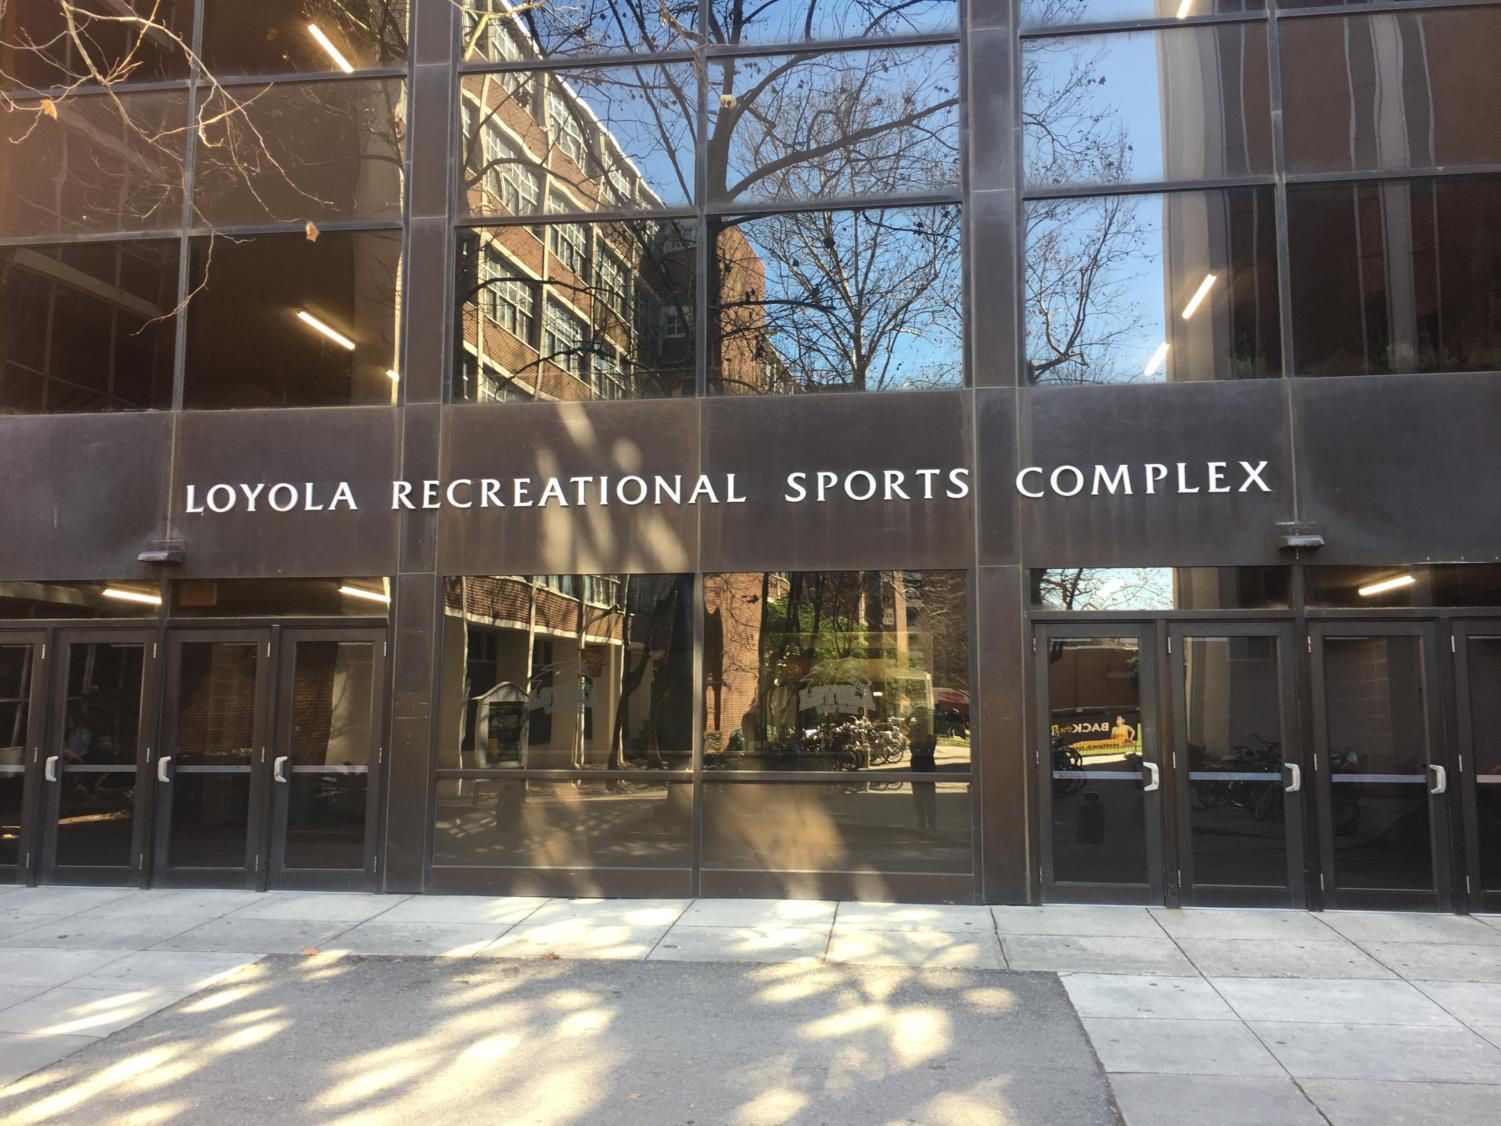 The Loyola University Sports Complex sits open on Jan. 29, 2018. The building will be closed temporarily on Feb. 1. Photo credit: Andres Fuentes